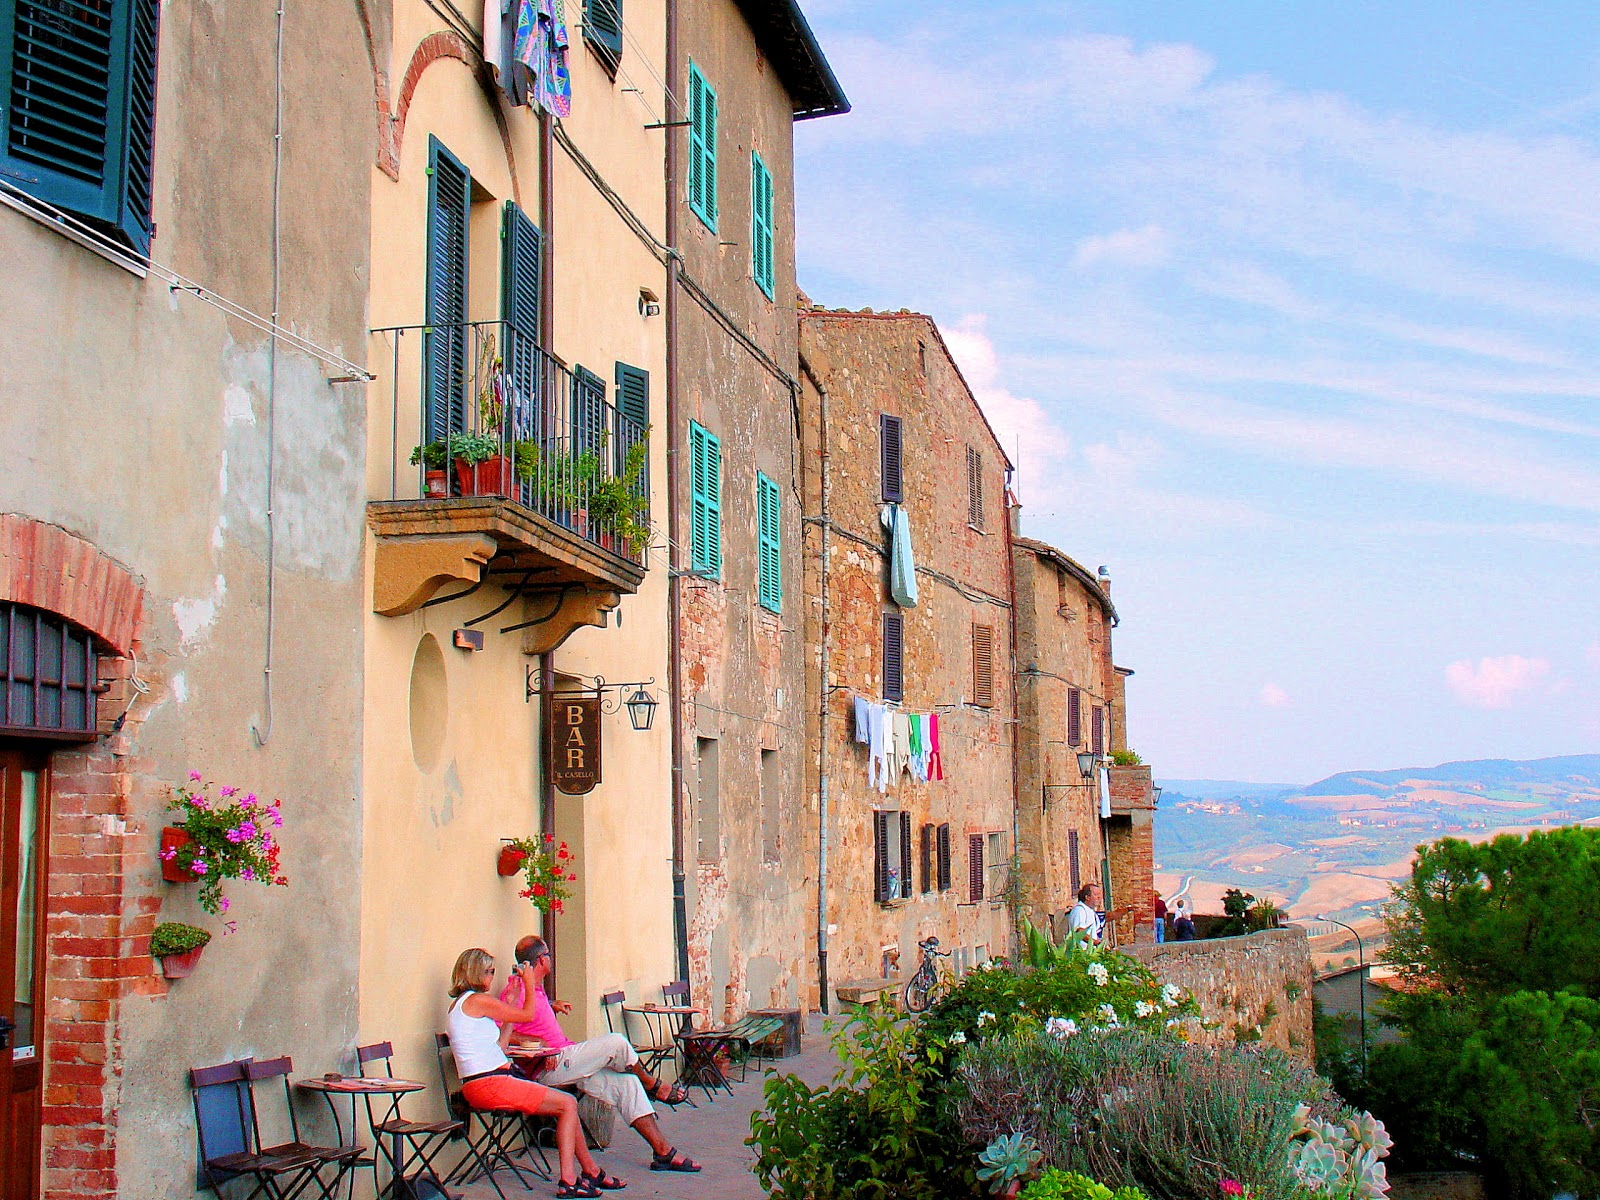 Pienza Italy  city photo : Charming hilltop town of Pienza in Tuscany, Italy, offers spectacular ...